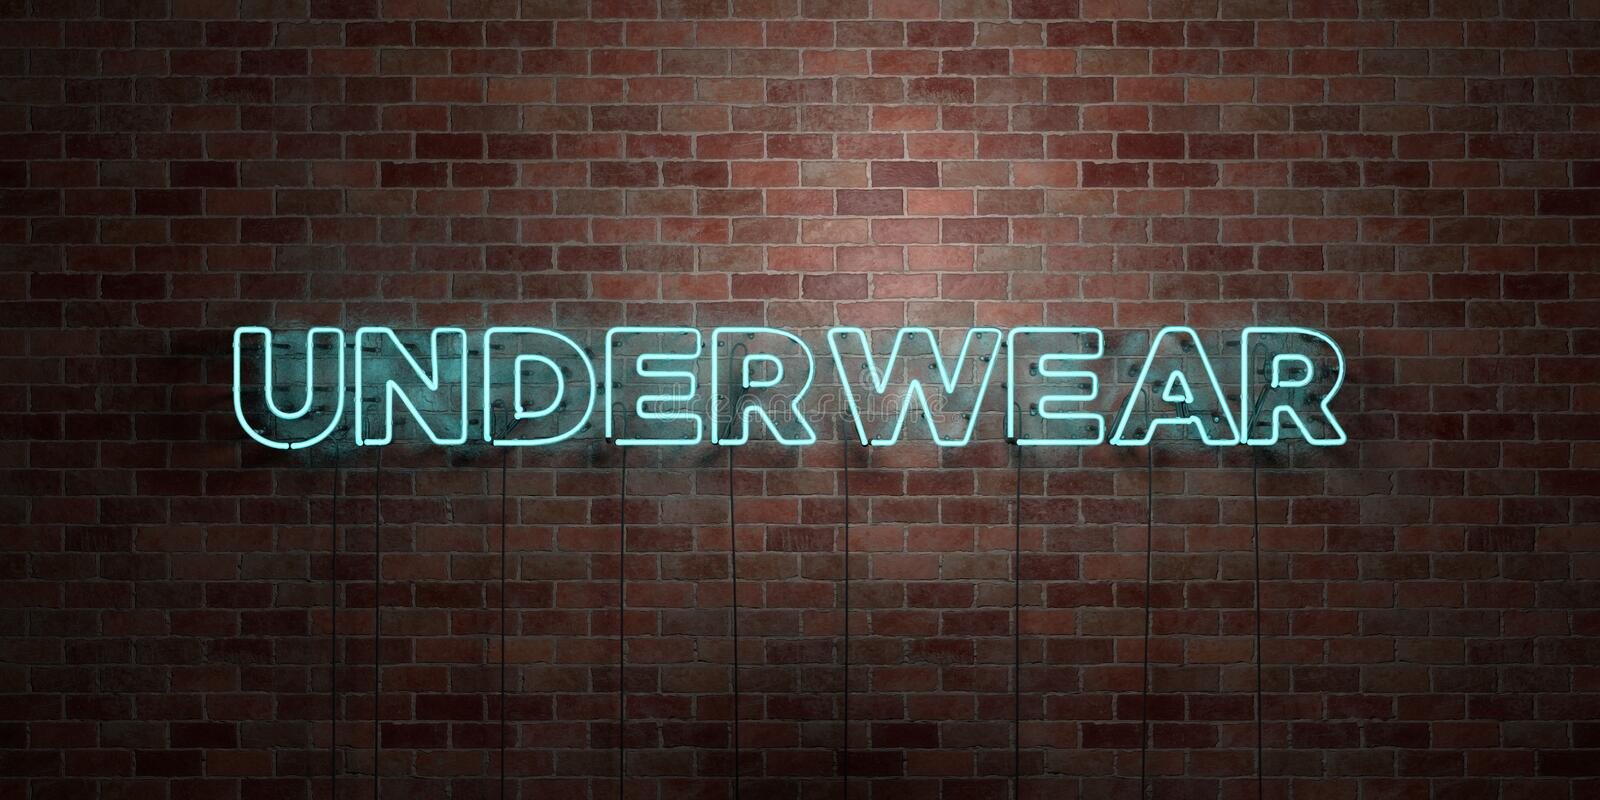 UNDERWEAR - fluorescent Neon tube Sign on brickwork - Front view - 3D rendered royalty free stock picture. Can be used for online banner ads and direct mailers stock images